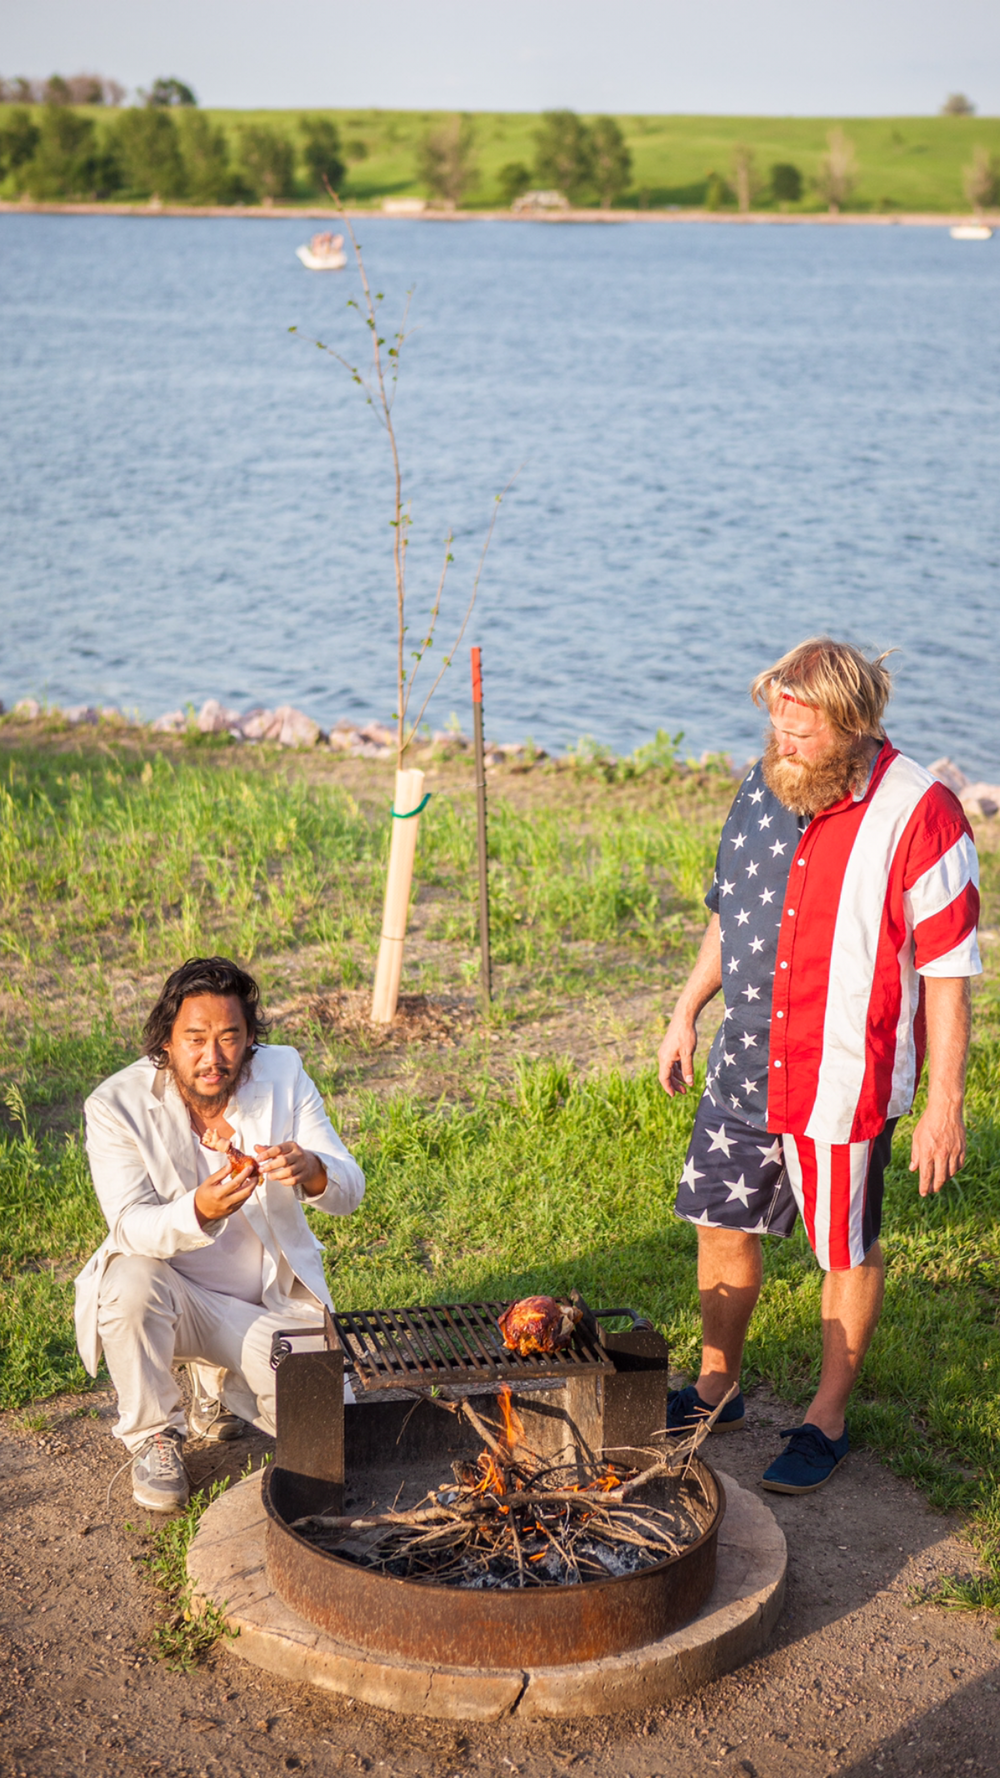 David Choe and Critter Flemming hitchhike across America in Thumbs Up Season 4